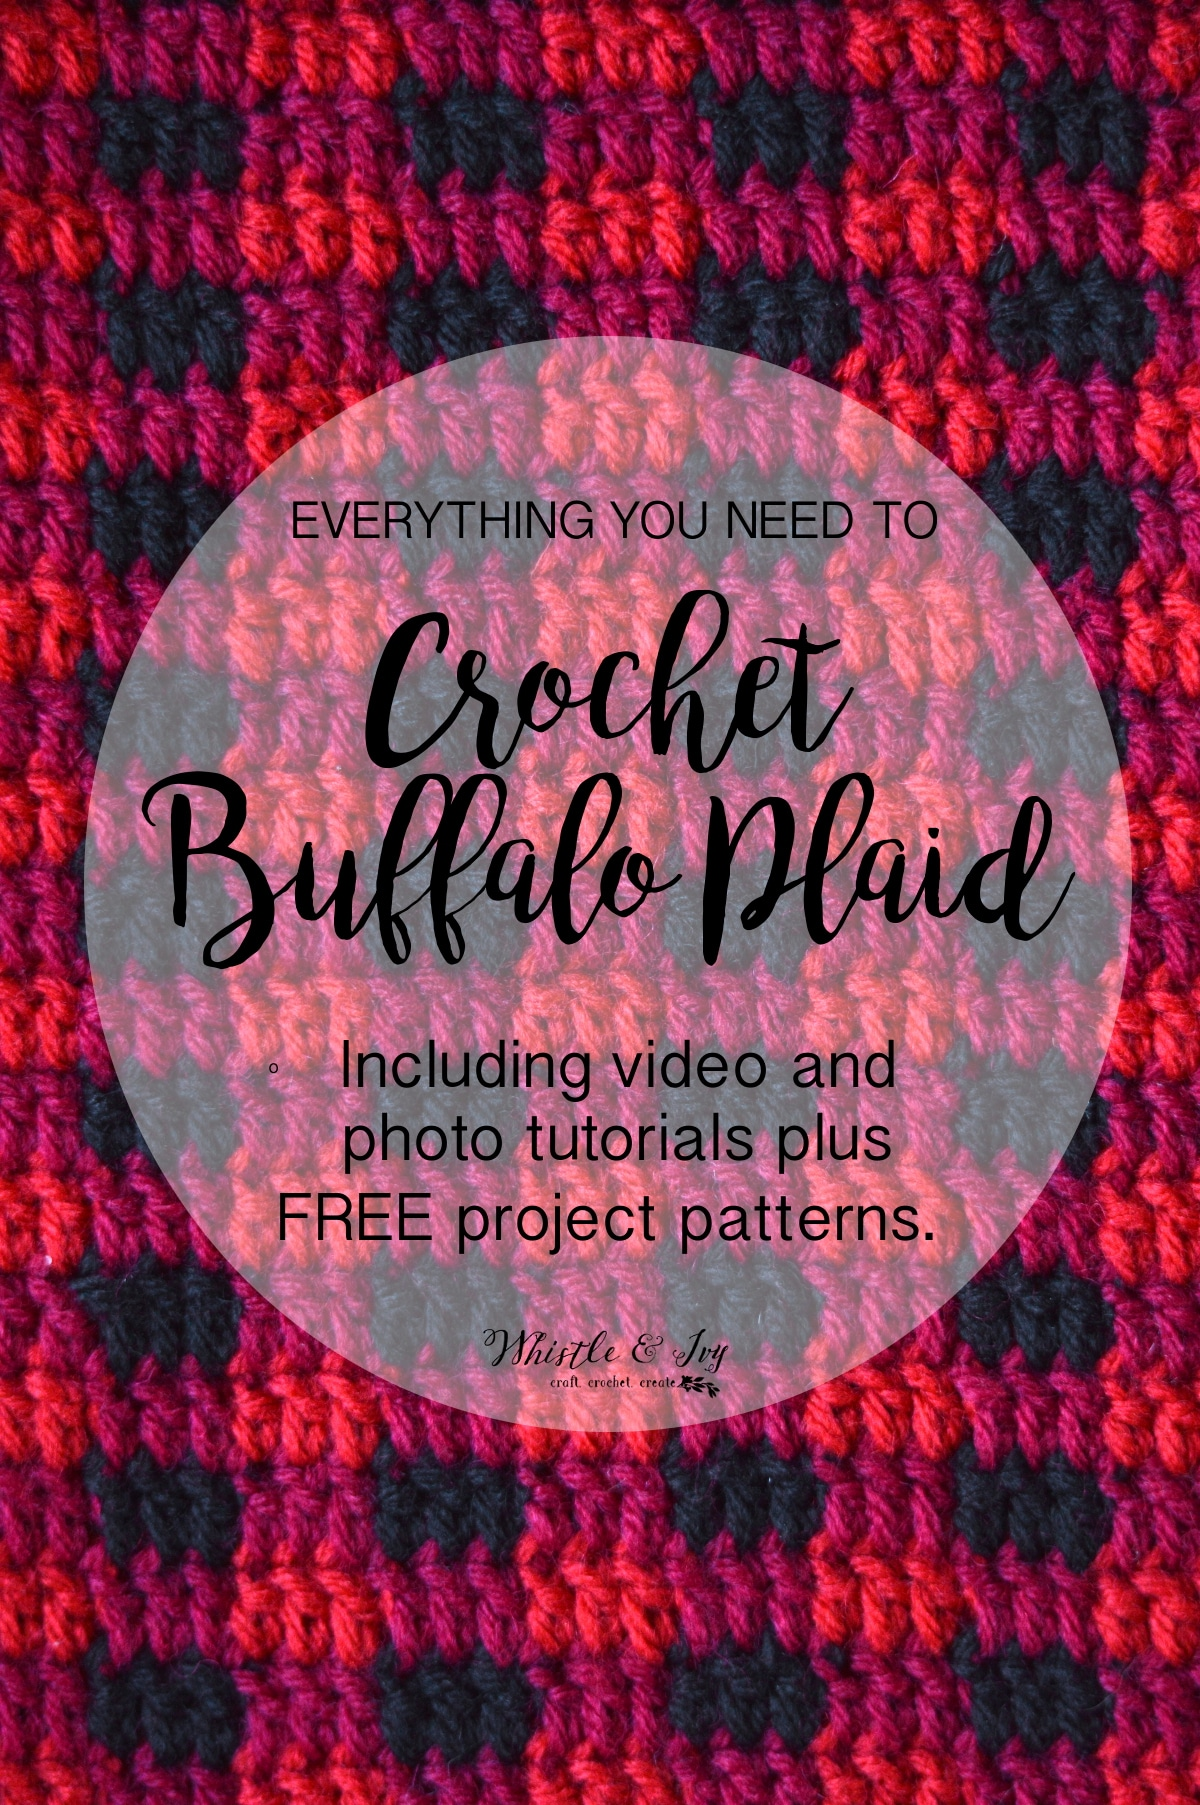 How To Crochet Buffalo Plaid The Plaid Stitch Whistle